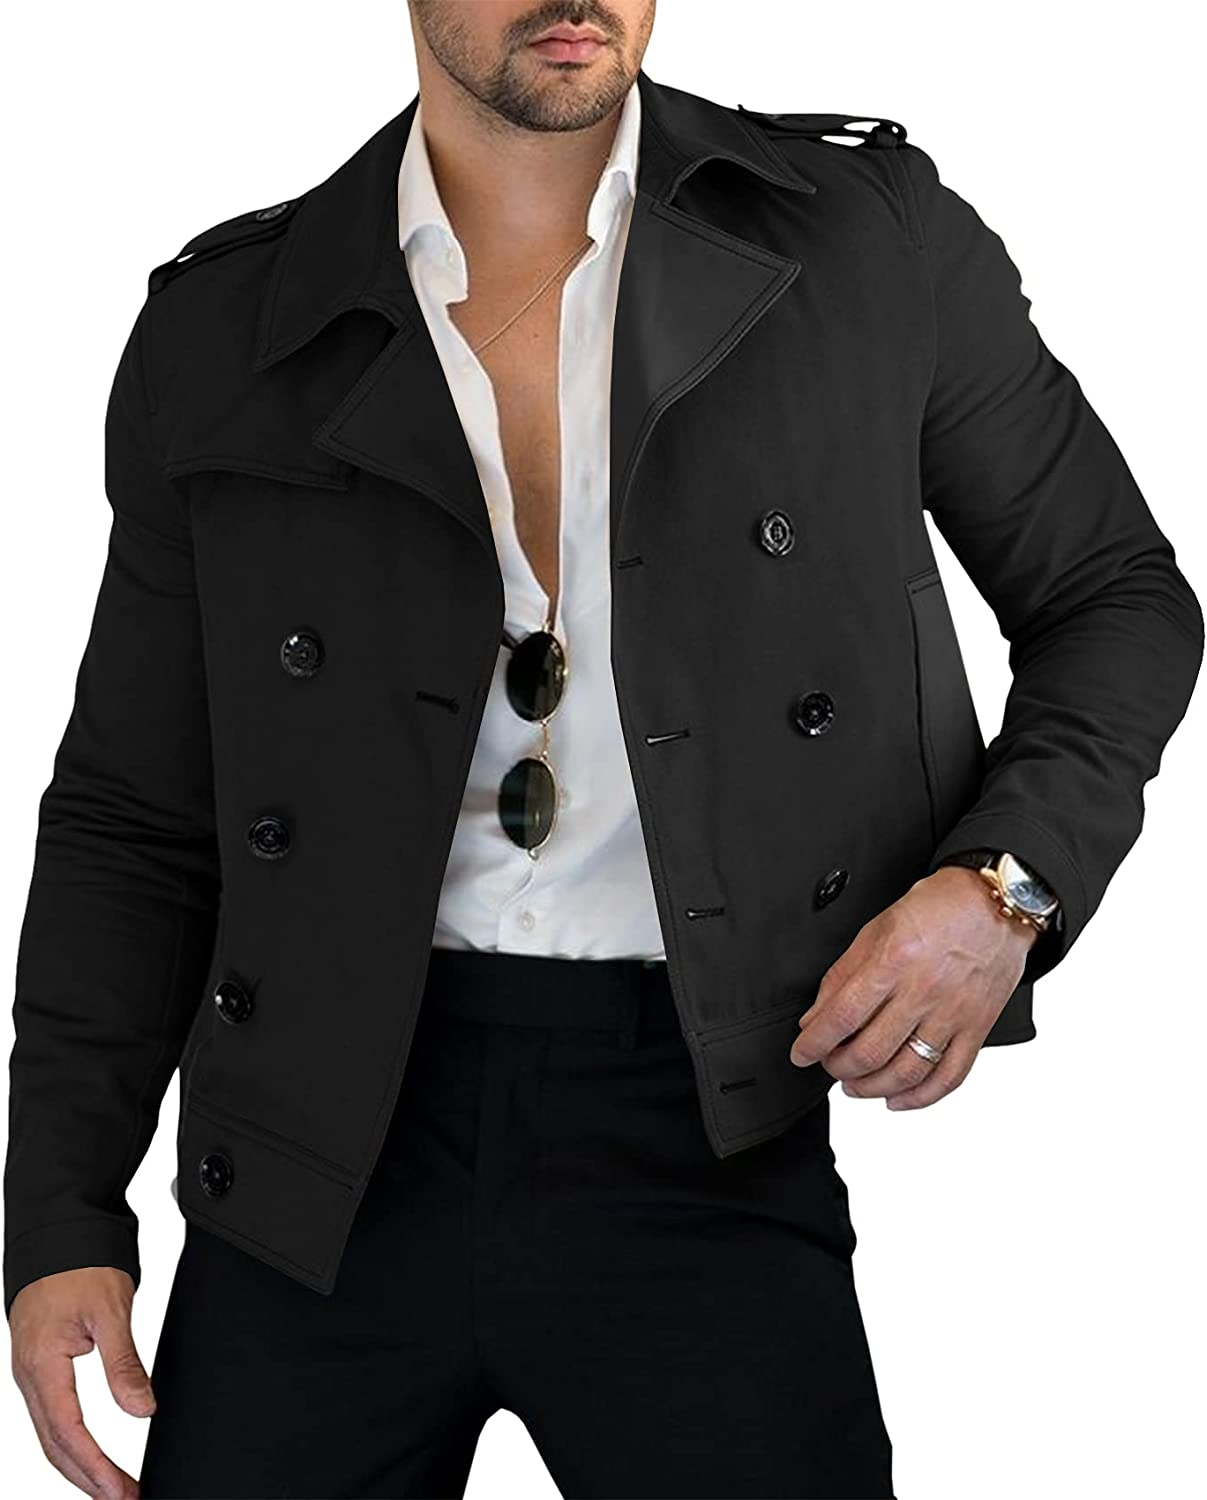 Lakimani Mens Double Breasted Jacket Slim Fit Cotton Lightweight Lapel Collar Short Trench Coat